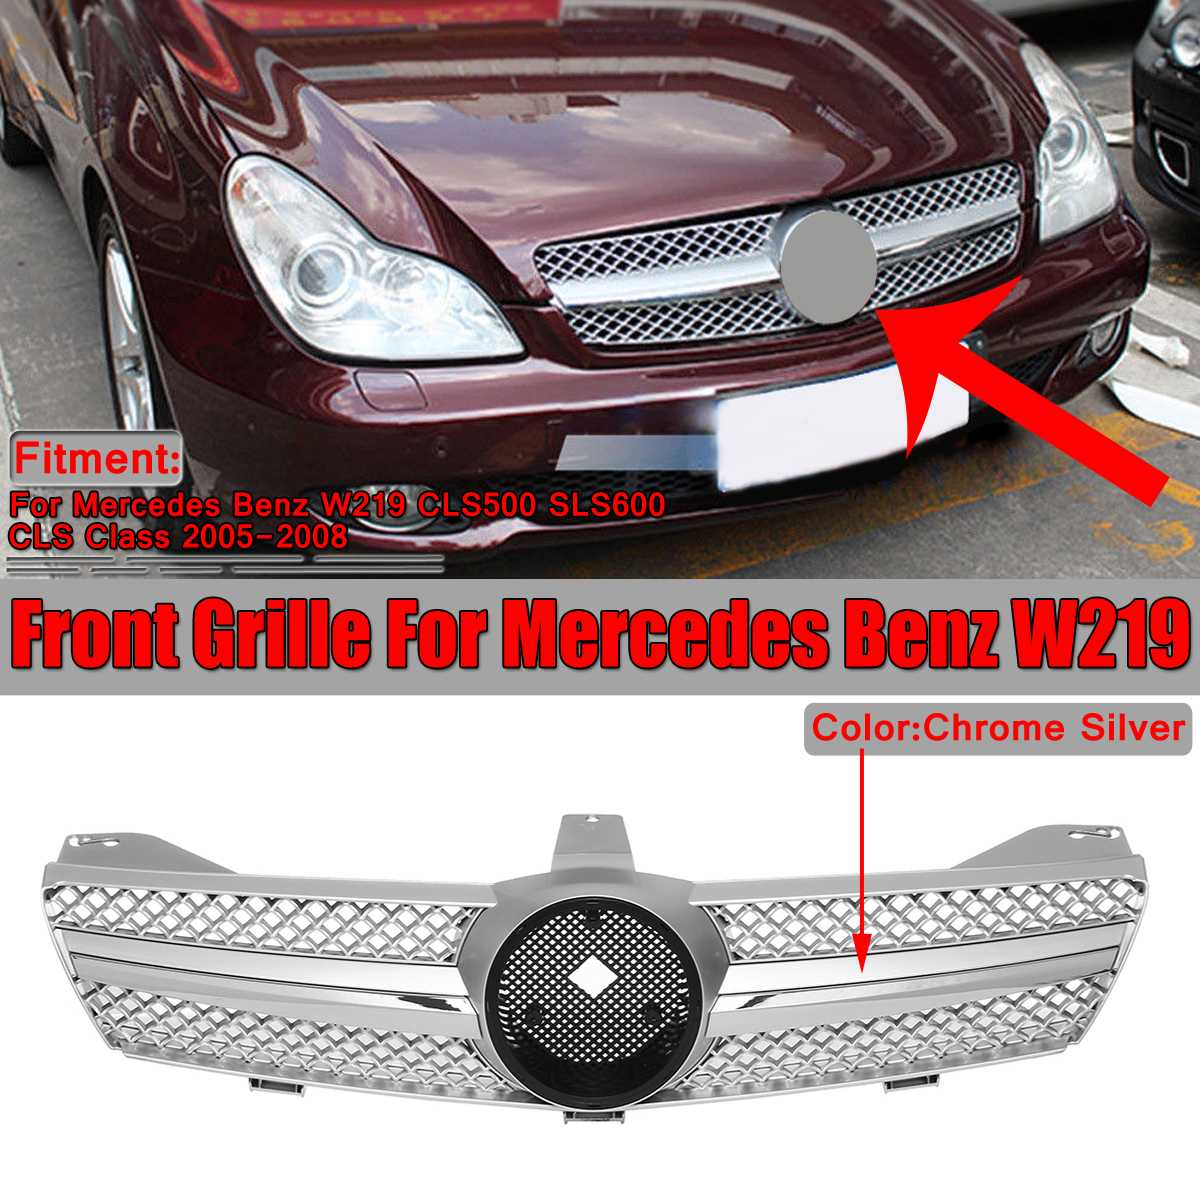 Chrome Silver Grille Car Front Grille Bumper Grill For Mercedes For Benz W219 CLS500 SLS600 CLS Class 2005-2008 Without EmblemChrome Silver Grille Car Front Grille Bumper Grill For Mercedes For Benz W219 CLS500 SLS600 CLS Class 2005-2008 Without Emblem